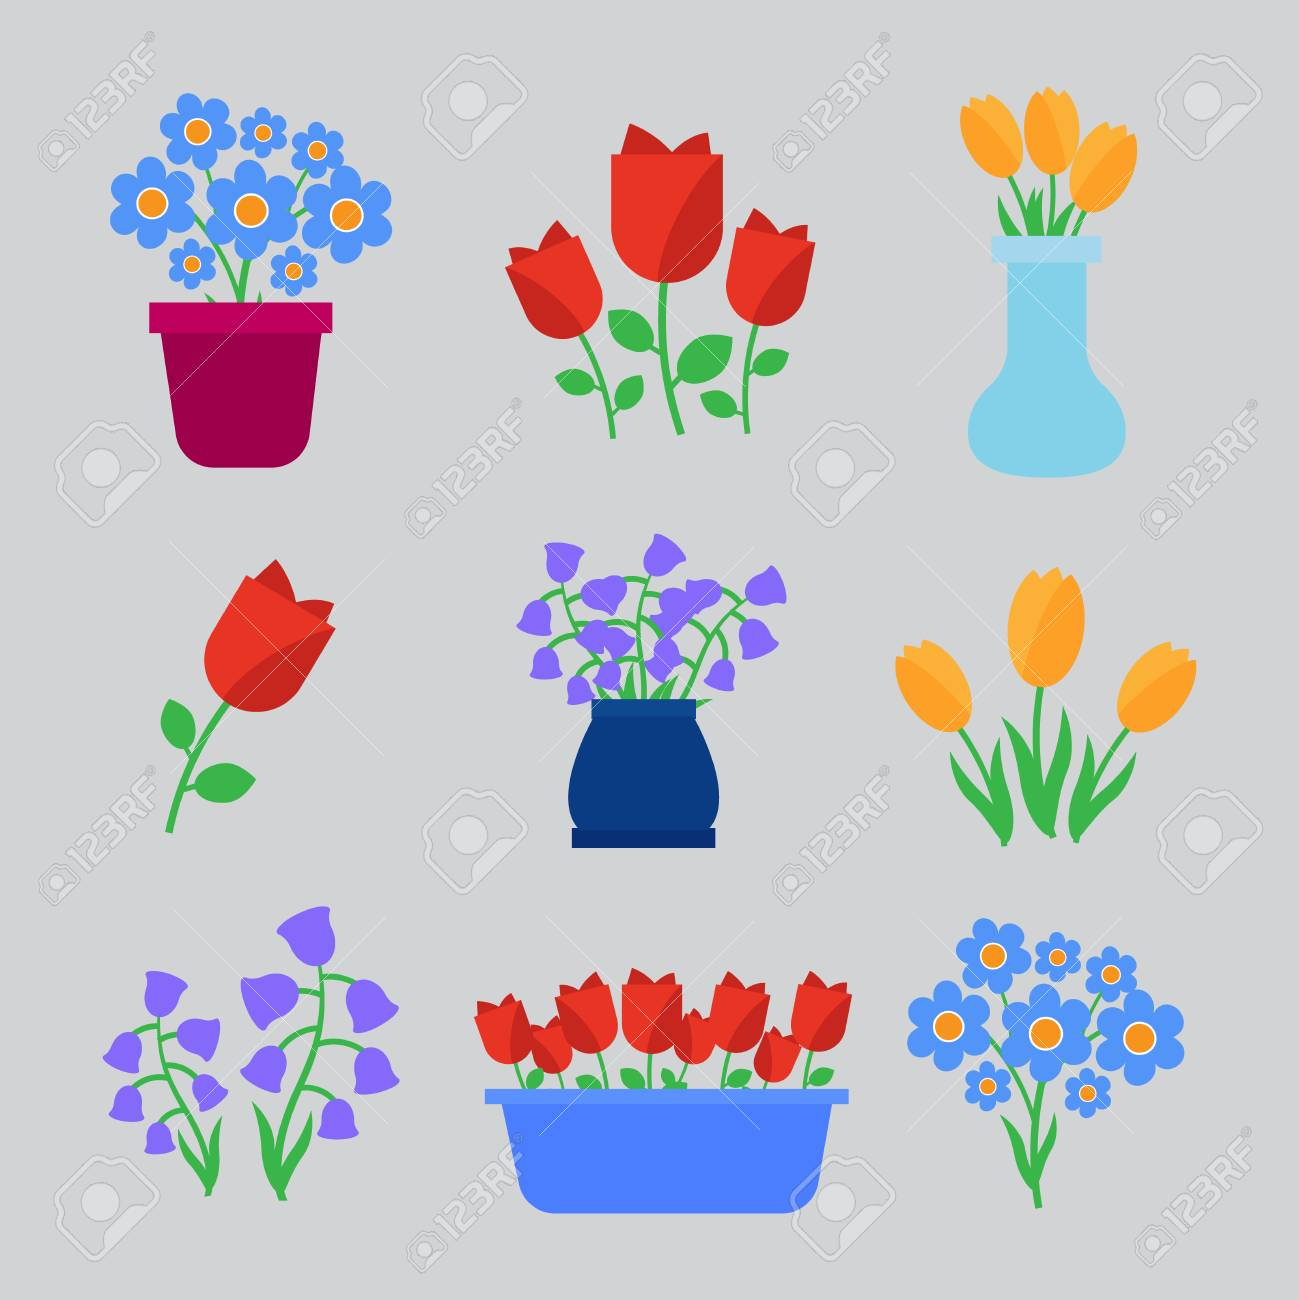 Spring Flowers Fun And Cute Vector Spring Flowers Icons Flowers